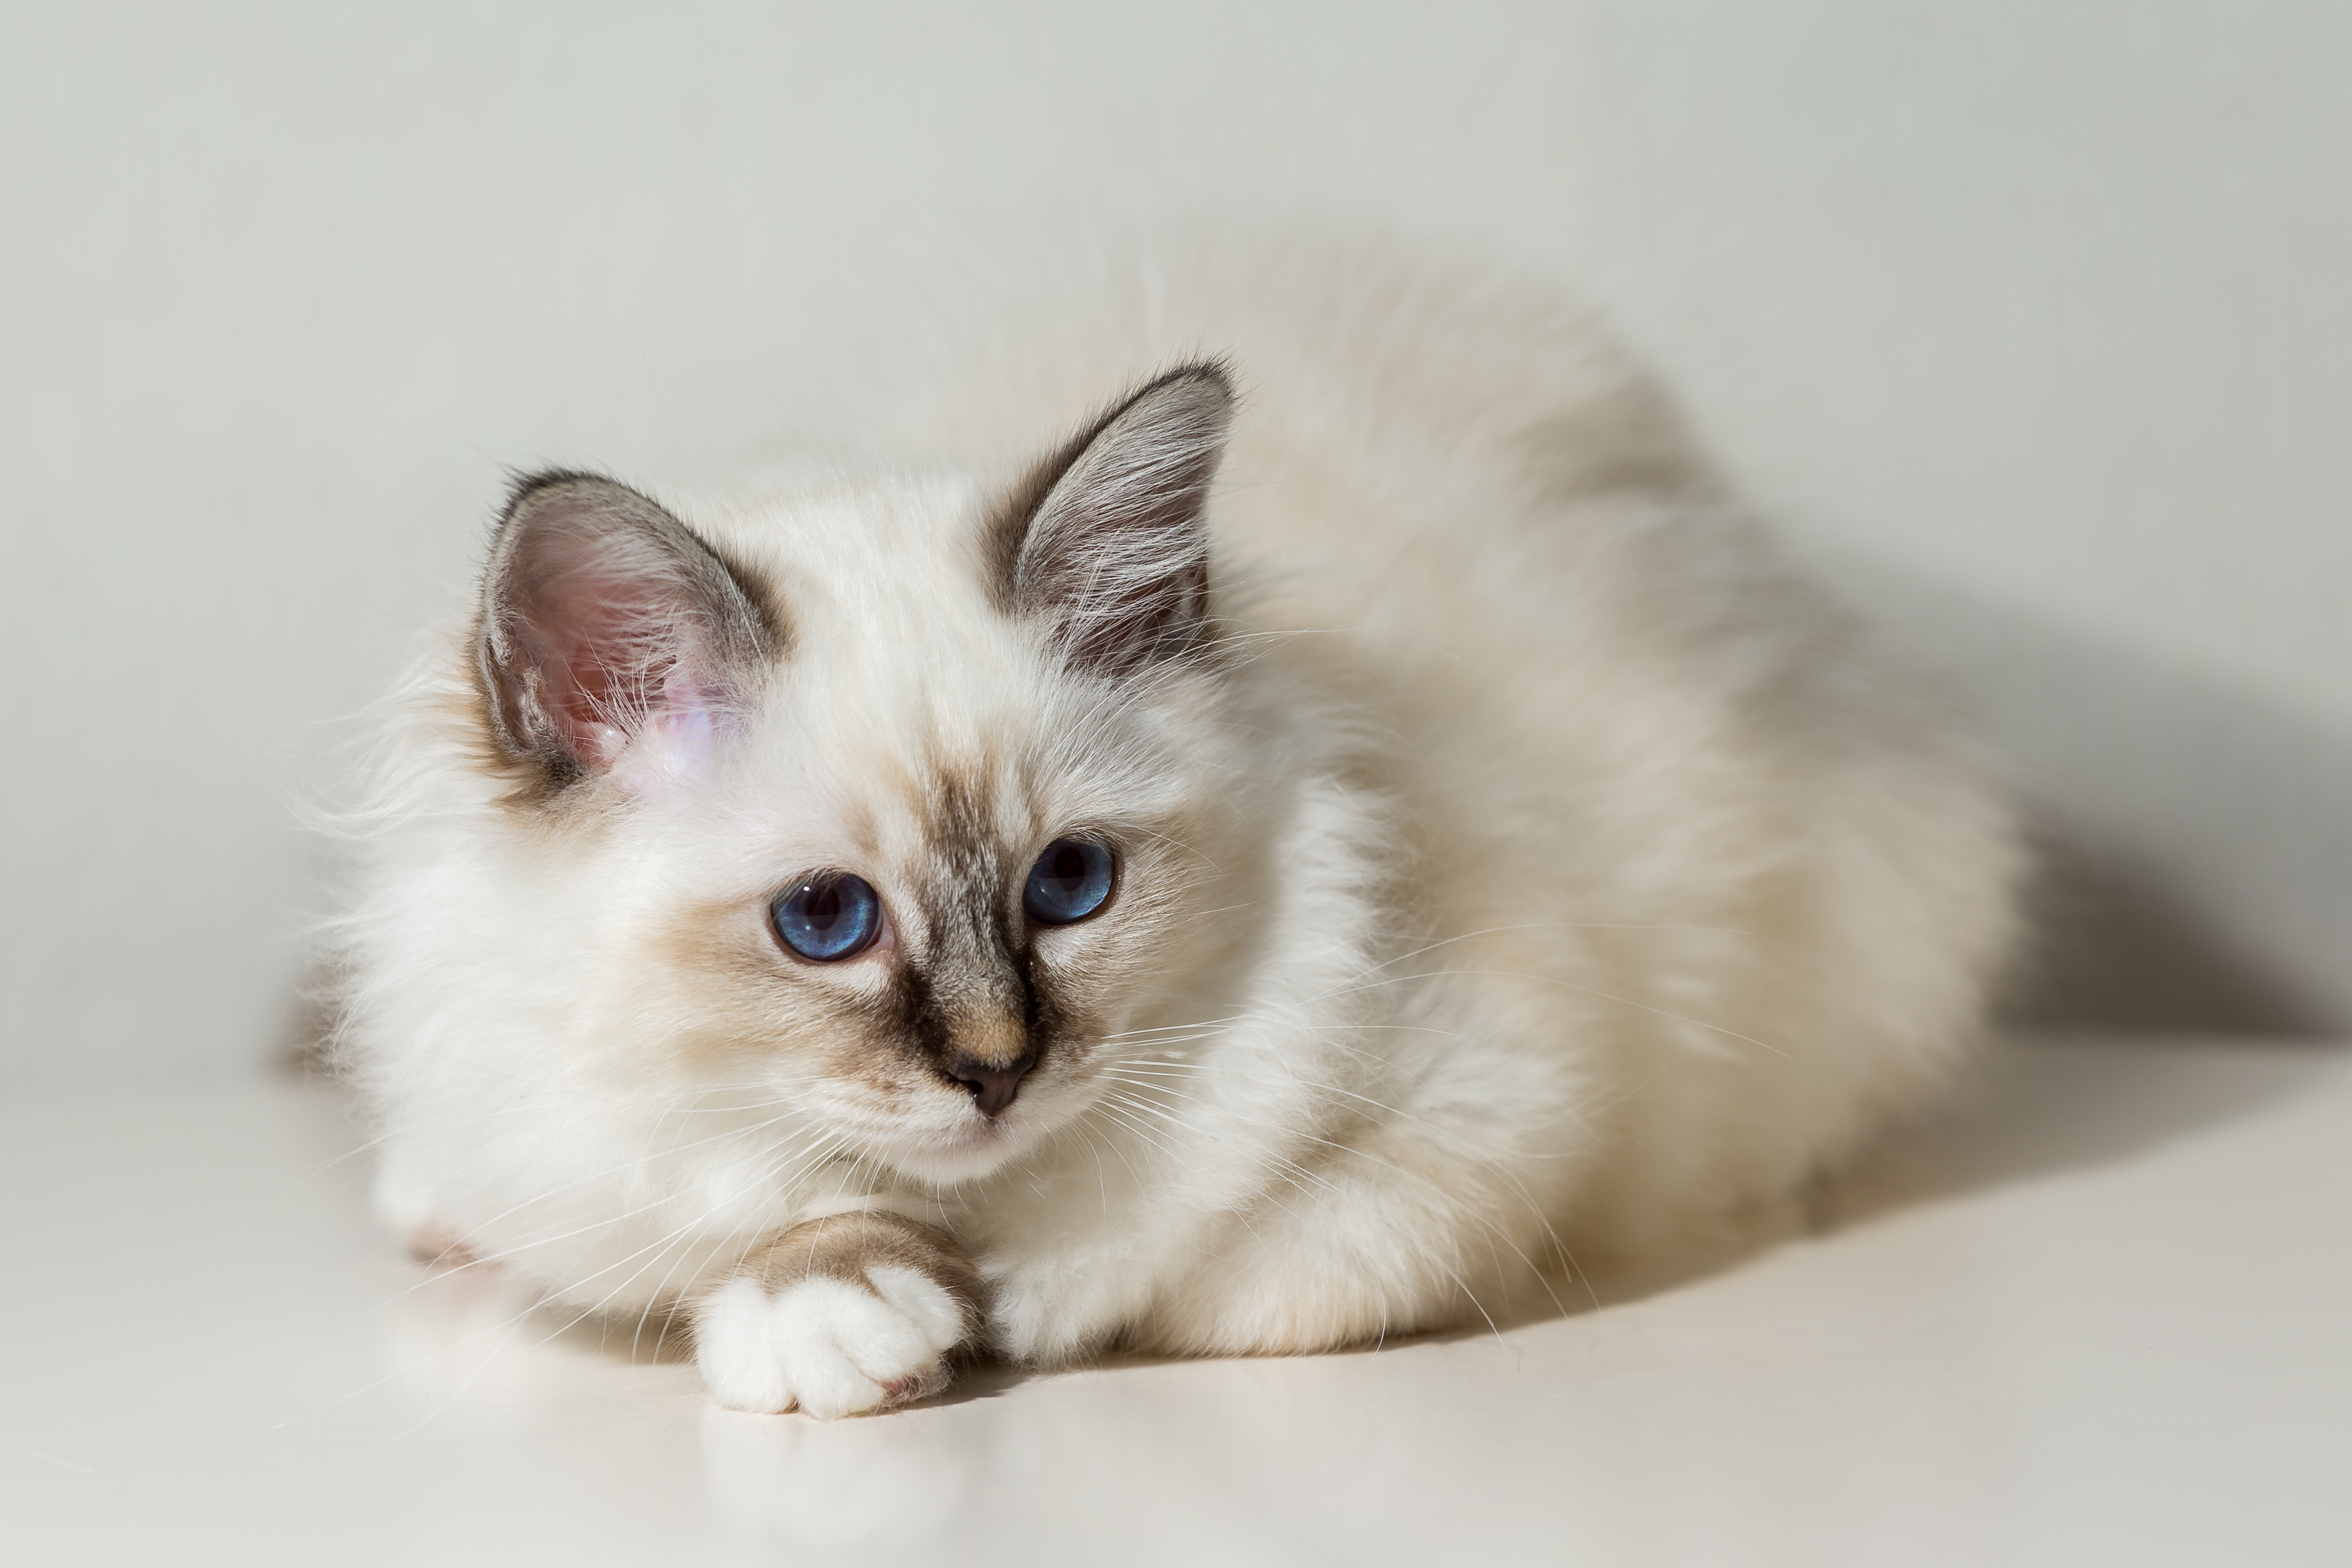 kitten cat breed sacred burma on a light background